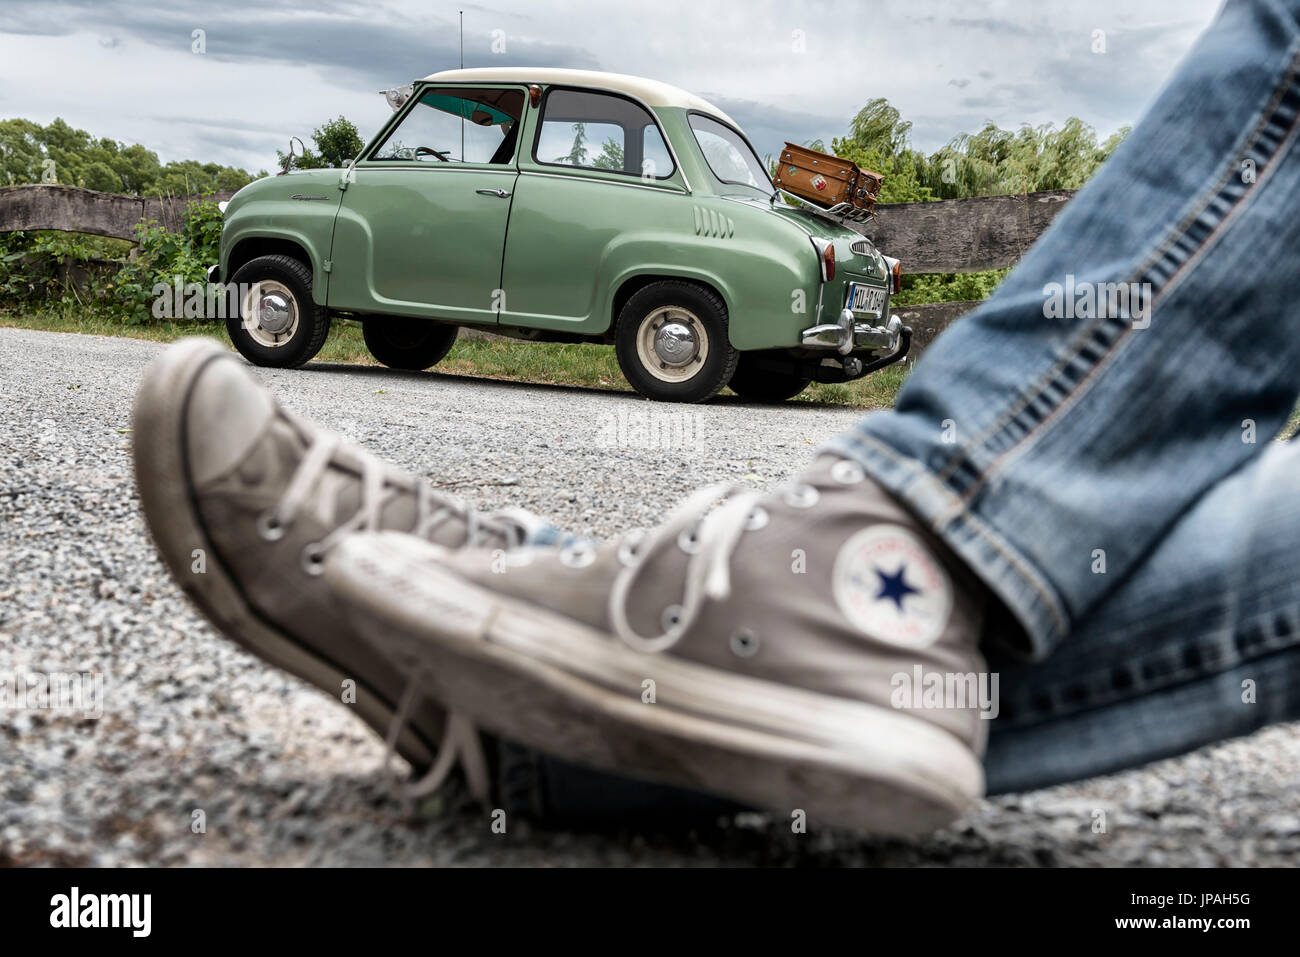 legs with sneakers in front of a Goggomobil - Stock Image